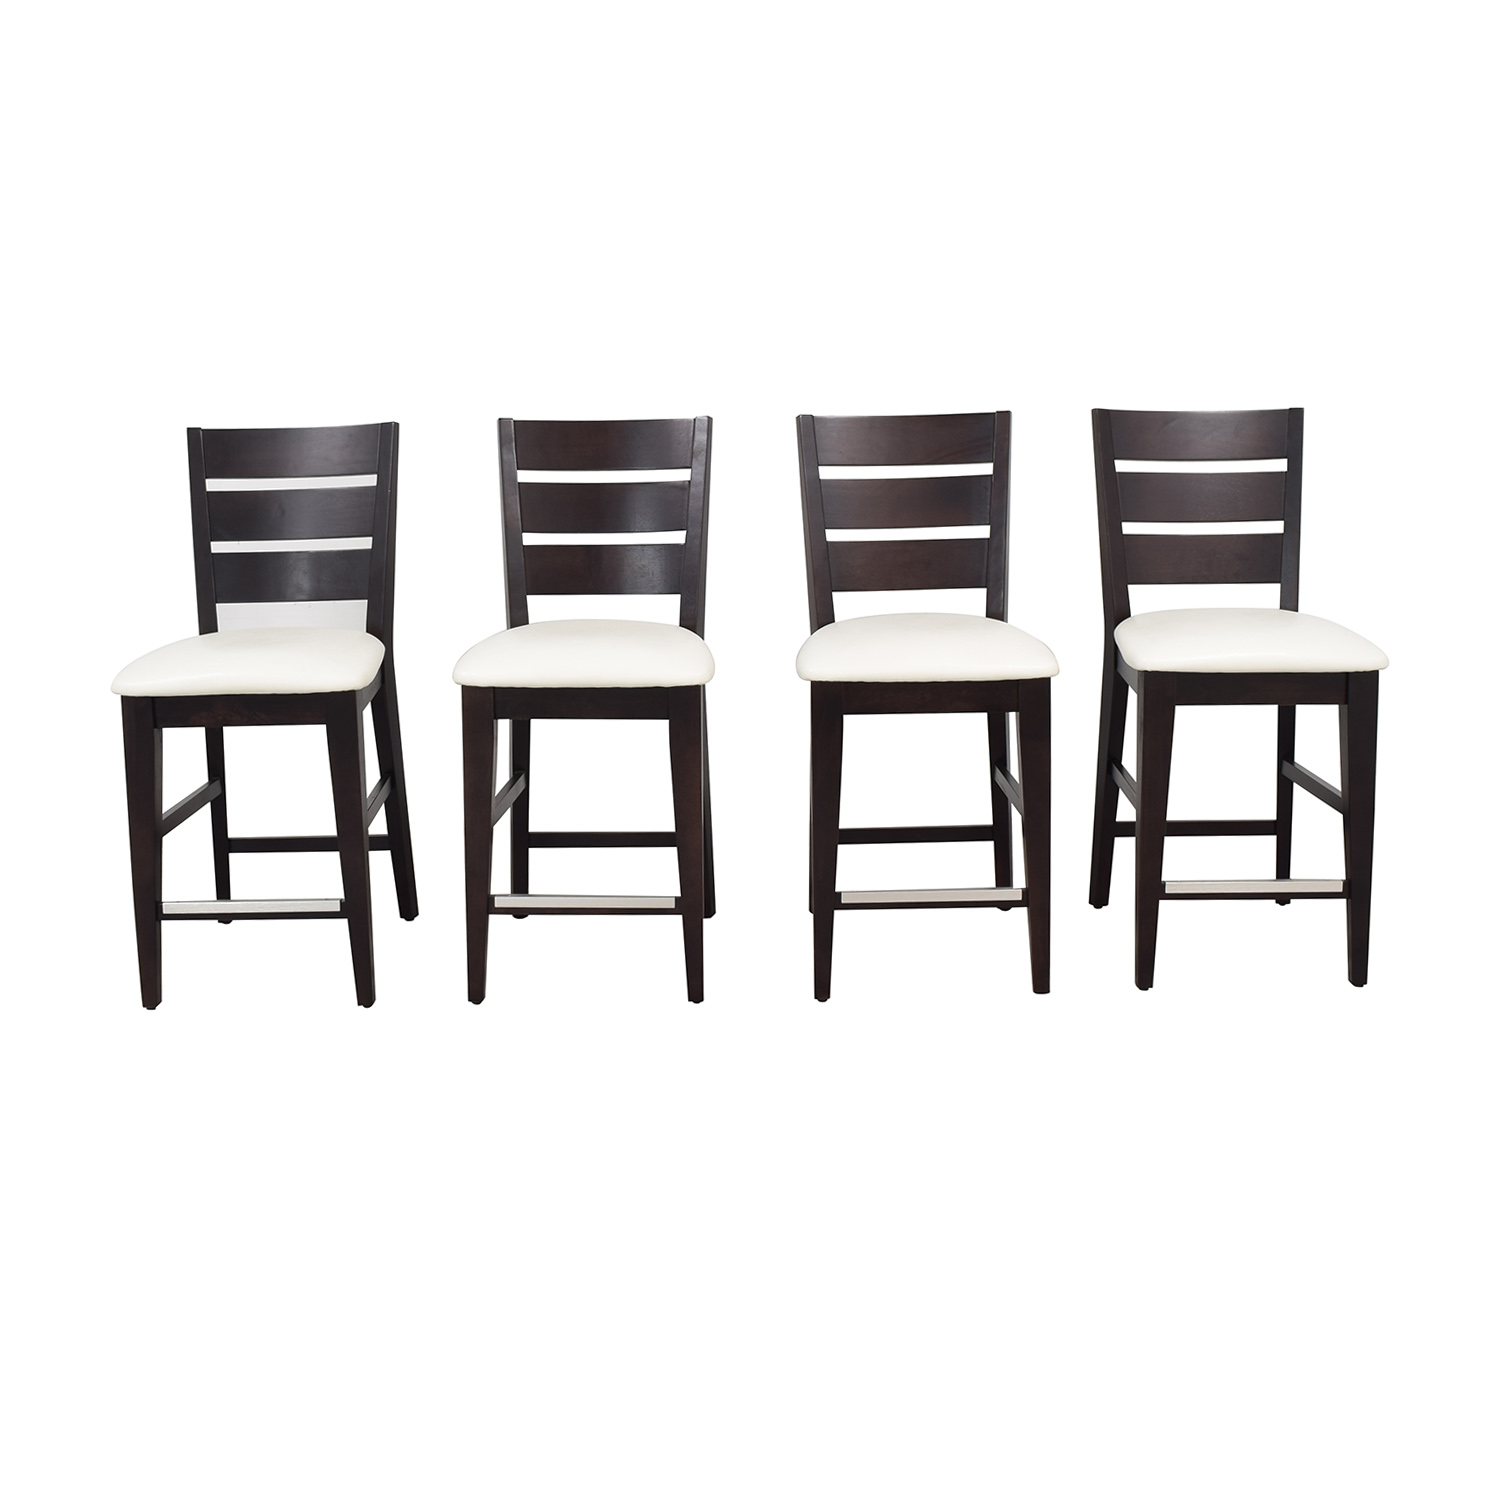 Thomasville Thomasville Upholstered Bar Chairs price